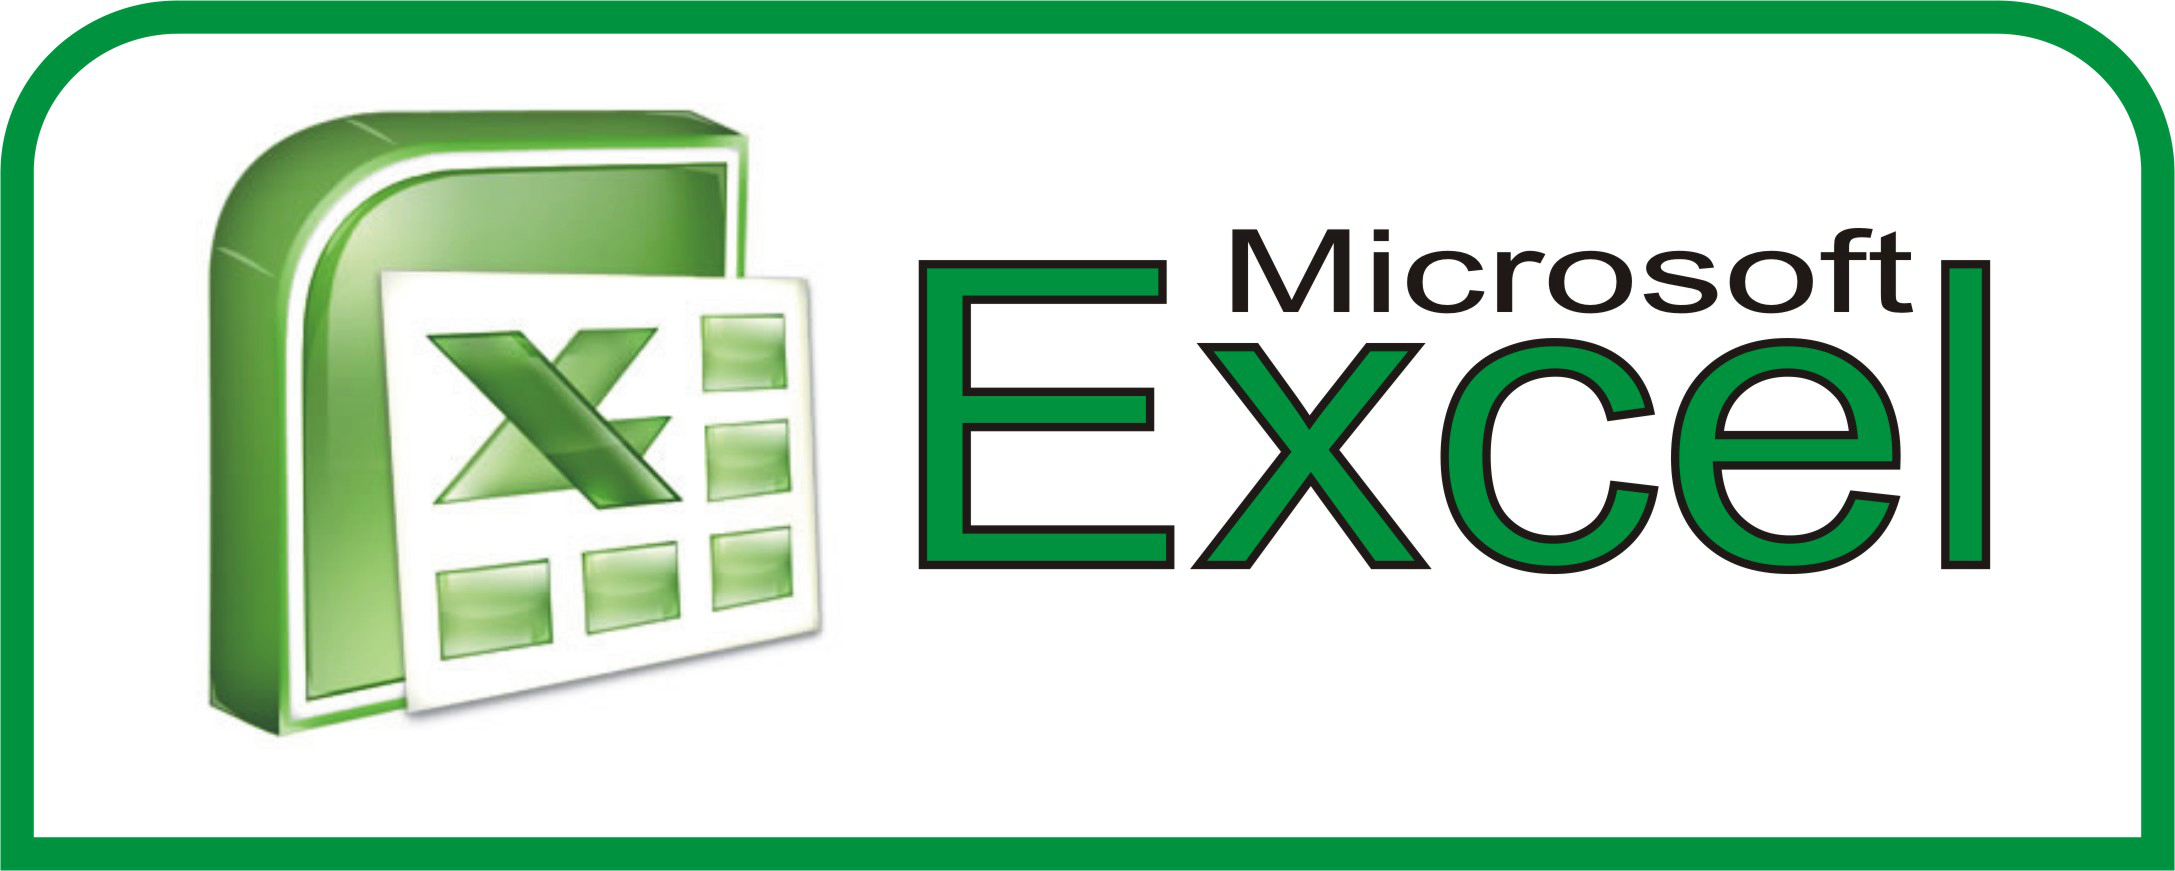 Ediblewildsus  Remarkable  Excel Shortcuts You Probably Didnt Know About  Techdissected With Inspiring Excel For Dummies  Besides Query Excel File Furthermore Sas And Excel With Enchanting Monthly Payment Formula Excel Also Sql Converter  For Excel In Addition Recalculate Formulas In Excel And Excel Scenarios As Well As Excel Picture Additionally Microsoft Excel  Shortcuts From Techdissectedcom With Ediblewildsus  Inspiring  Excel Shortcuts You Probably Didnt Know About  Techdissected With Enchanting Excel For Dummies  Besides Query Excel File Furthermore Sas And Excel And Remarkable Monthly Payment Formula Excel Also Sql Converter  For Excel In Addition Recalculate Formulas In Excel From Techdissectedcom